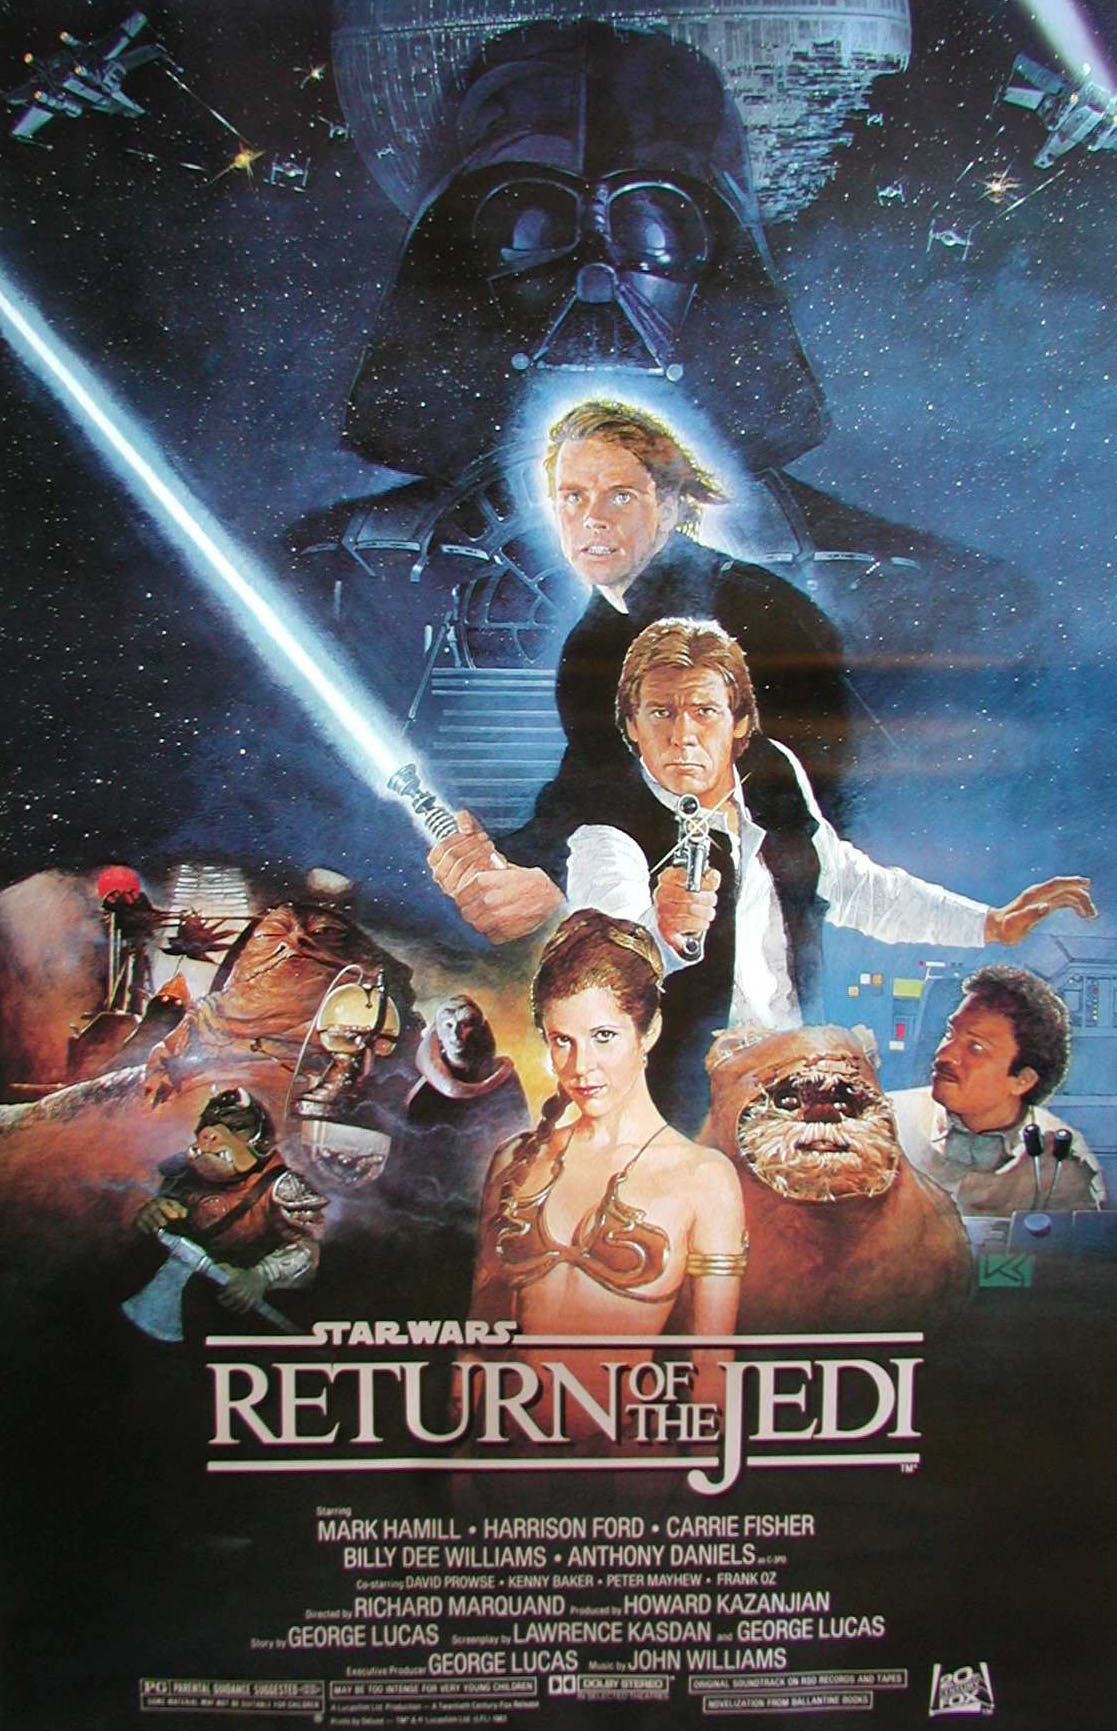 Image result for Return of the jedi poster